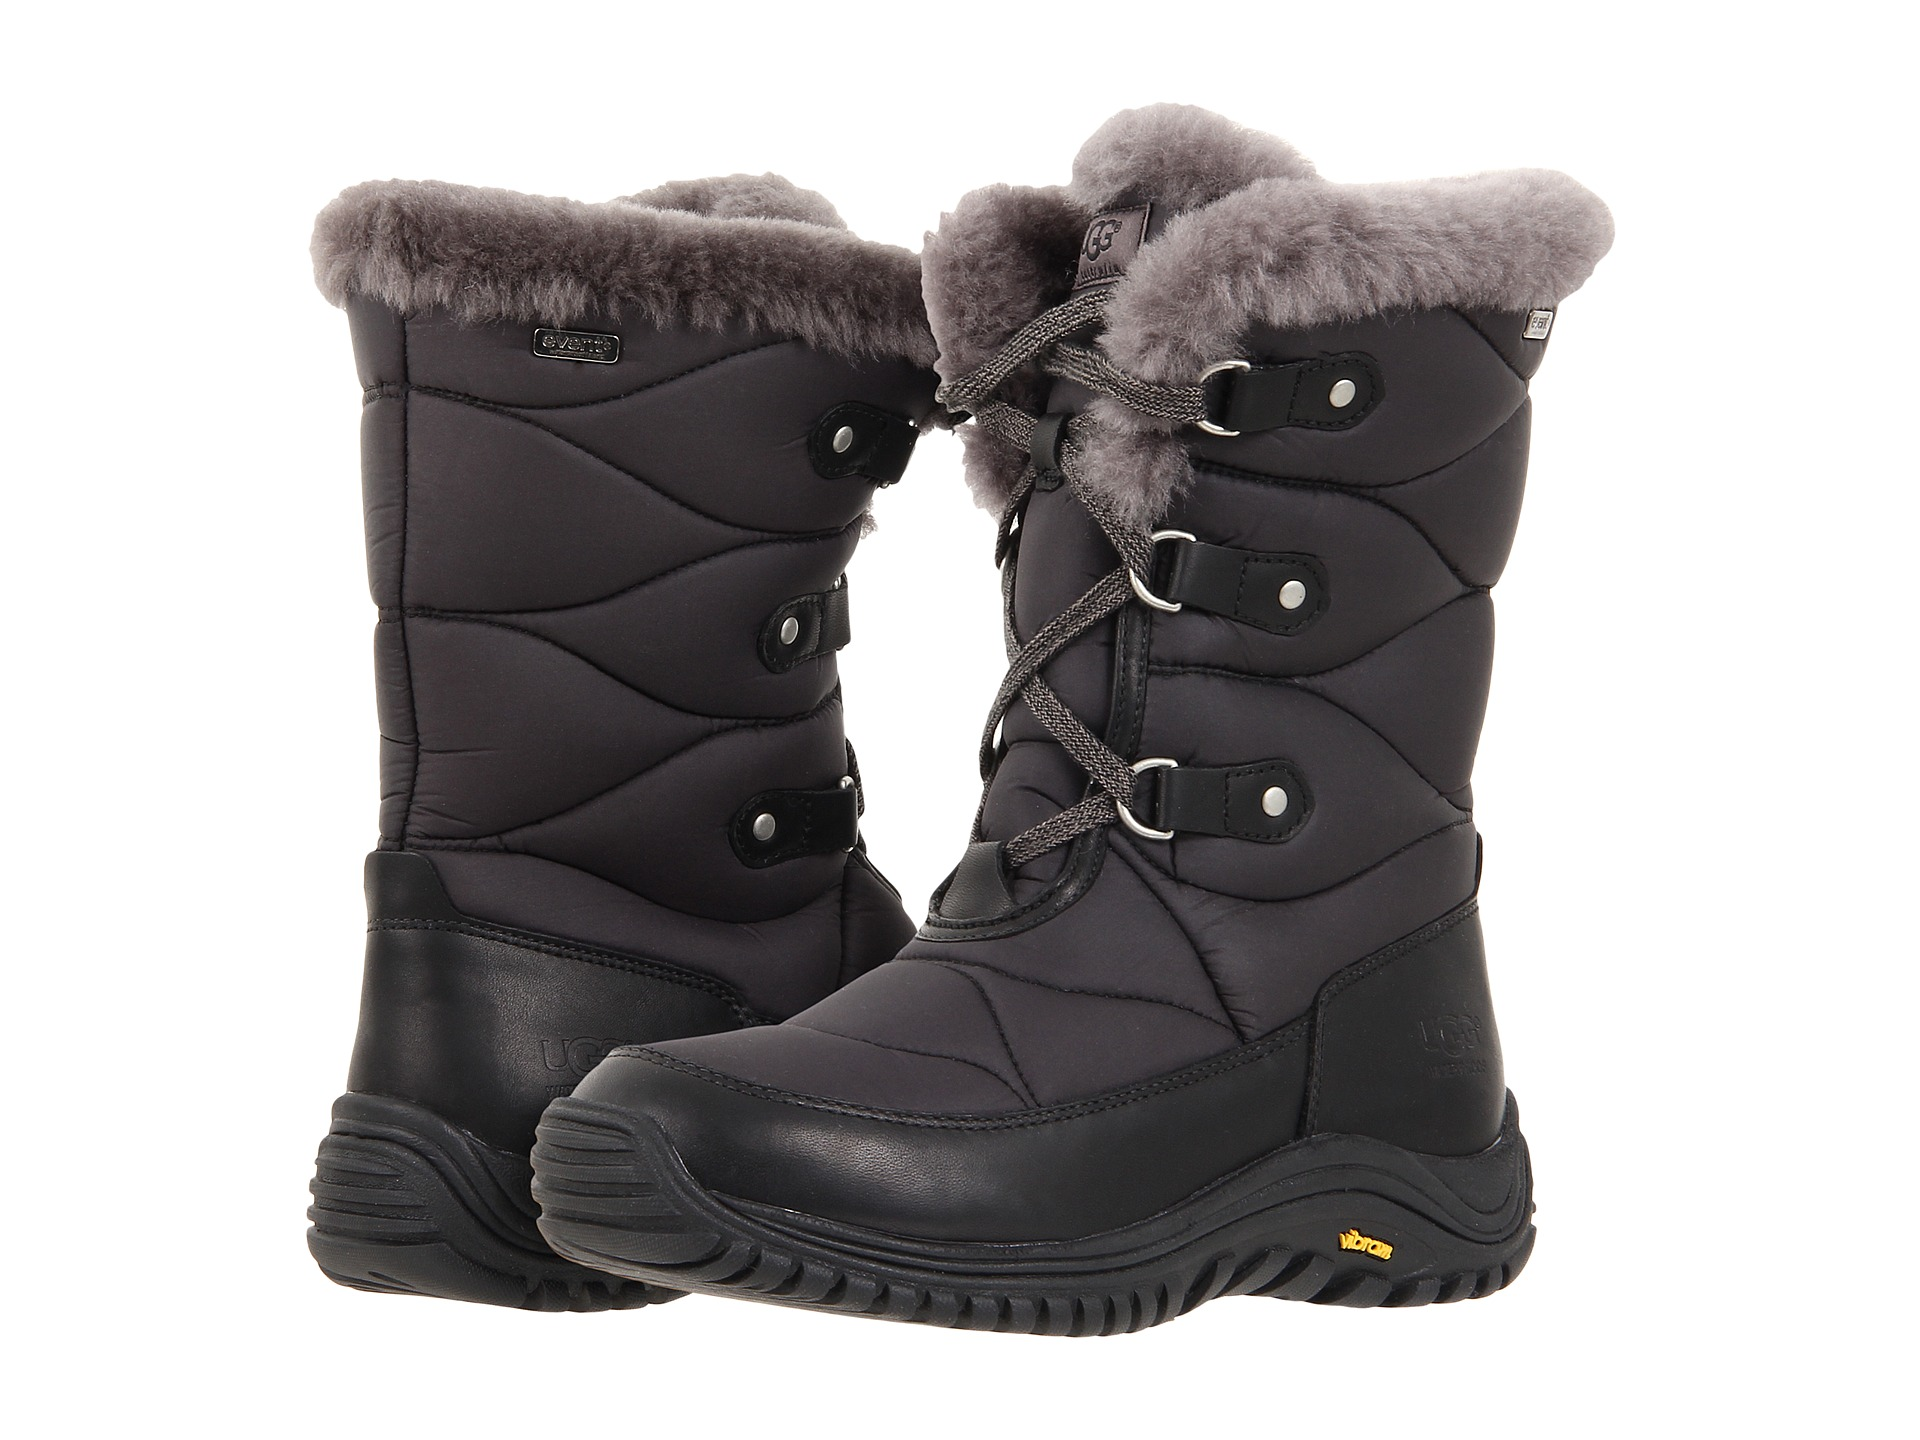 ugg womens lorien snow boots. Black Bedroom Furniture Sets. Home Design Ideas